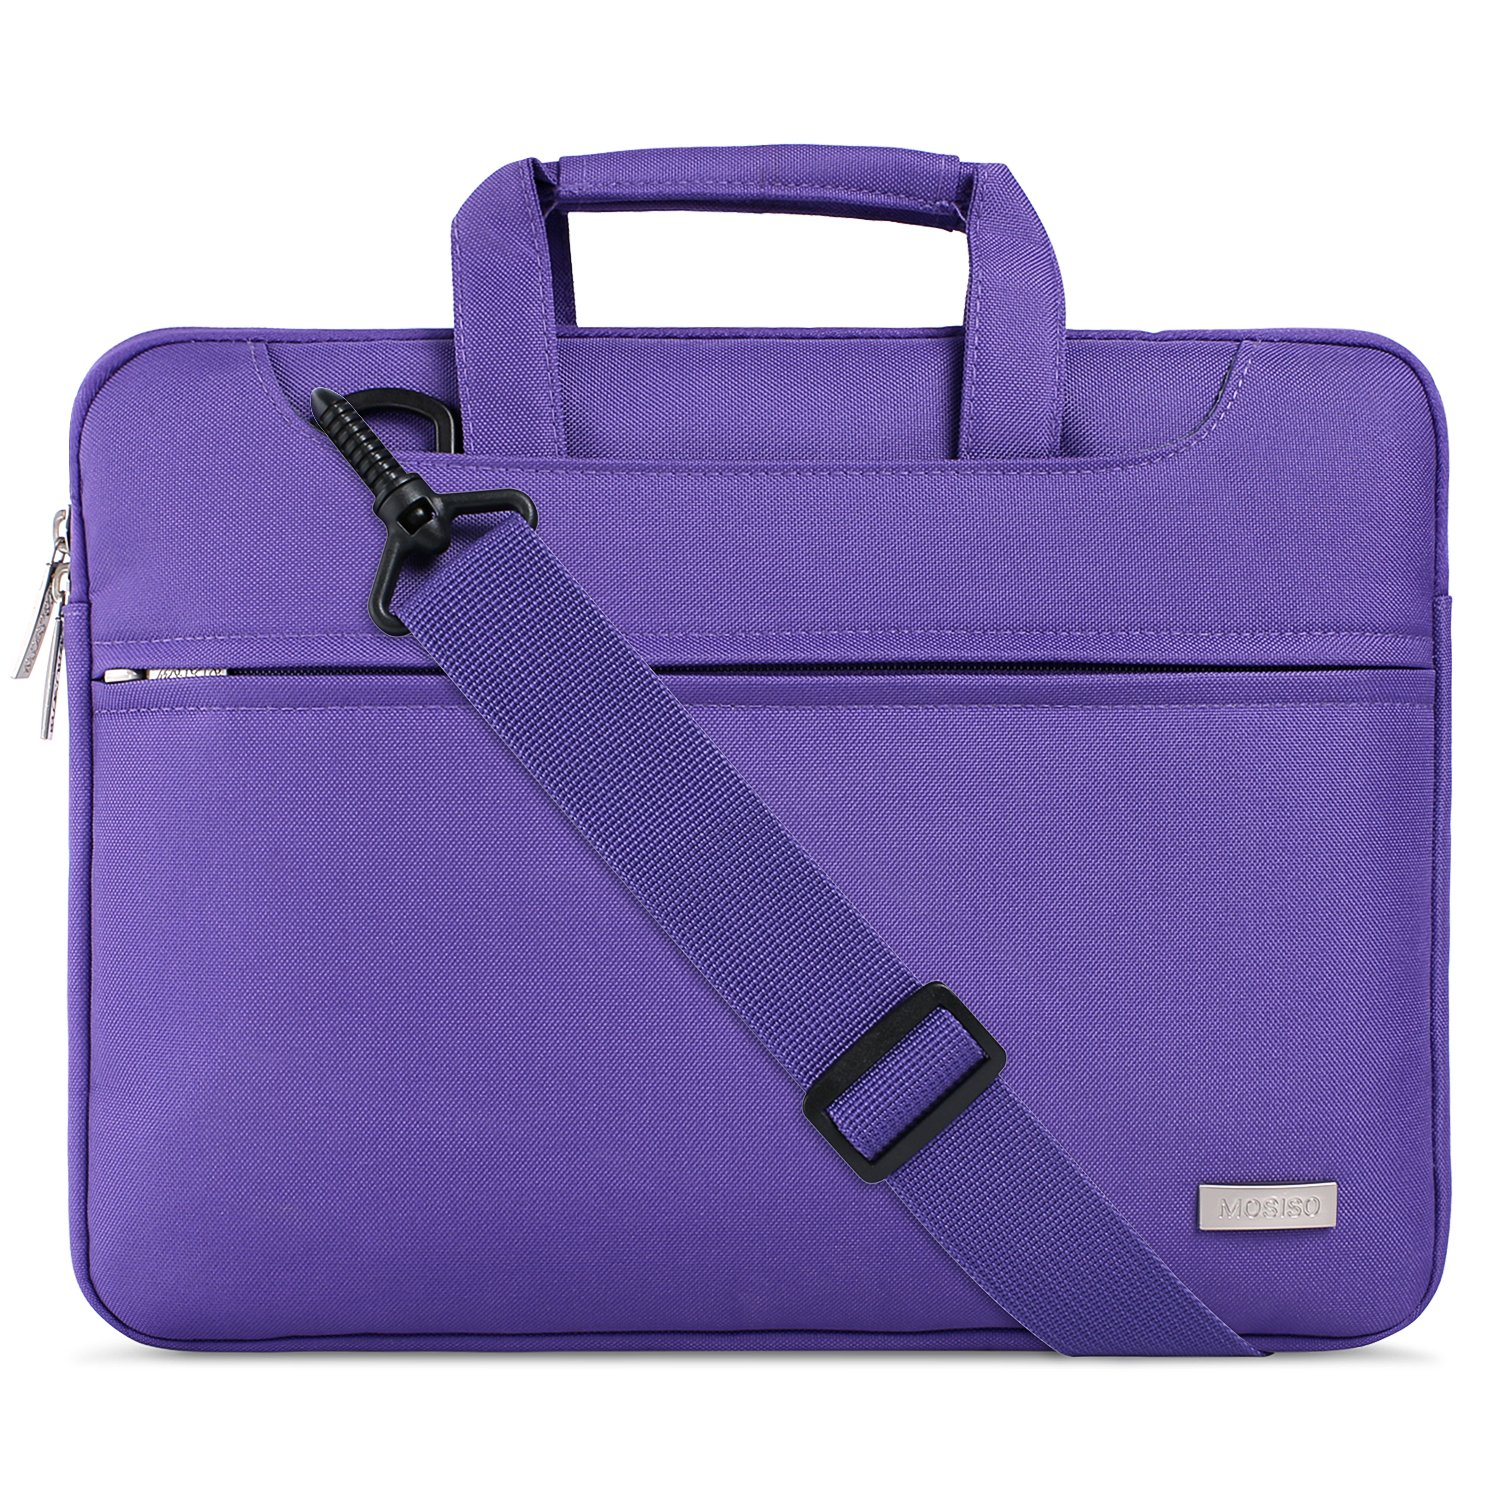 MOSISO Laptop Shoulder Bag Compatible 15 Inch MacBook Pro with Touch Bar A1990 & A1707 2018 2017 2016, Also Fit 14 Inch Notebook, Polyester Briefcase Sleeve with Back Belt for Trolly Case, Pink